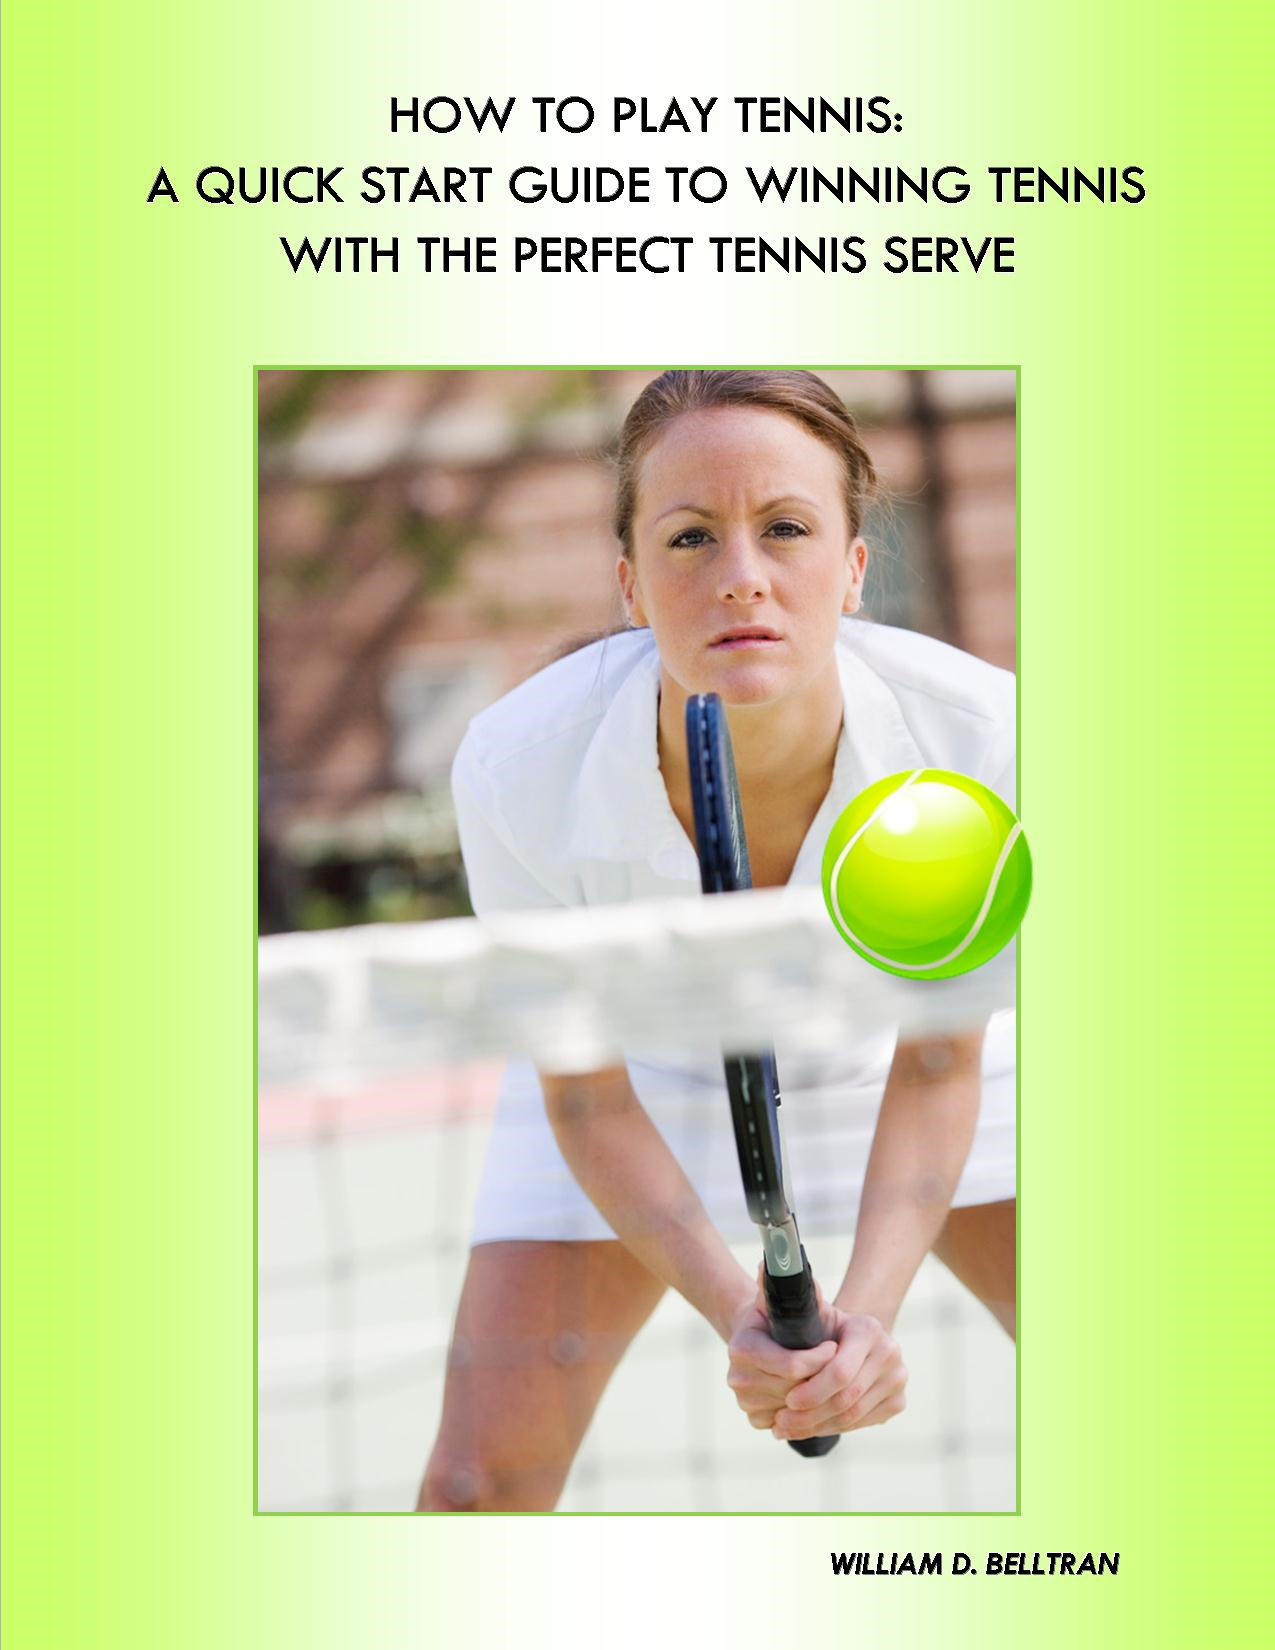 How to Play Tennis: Expert Tennis Tips & Tennis Lessons By: William D. Belltran